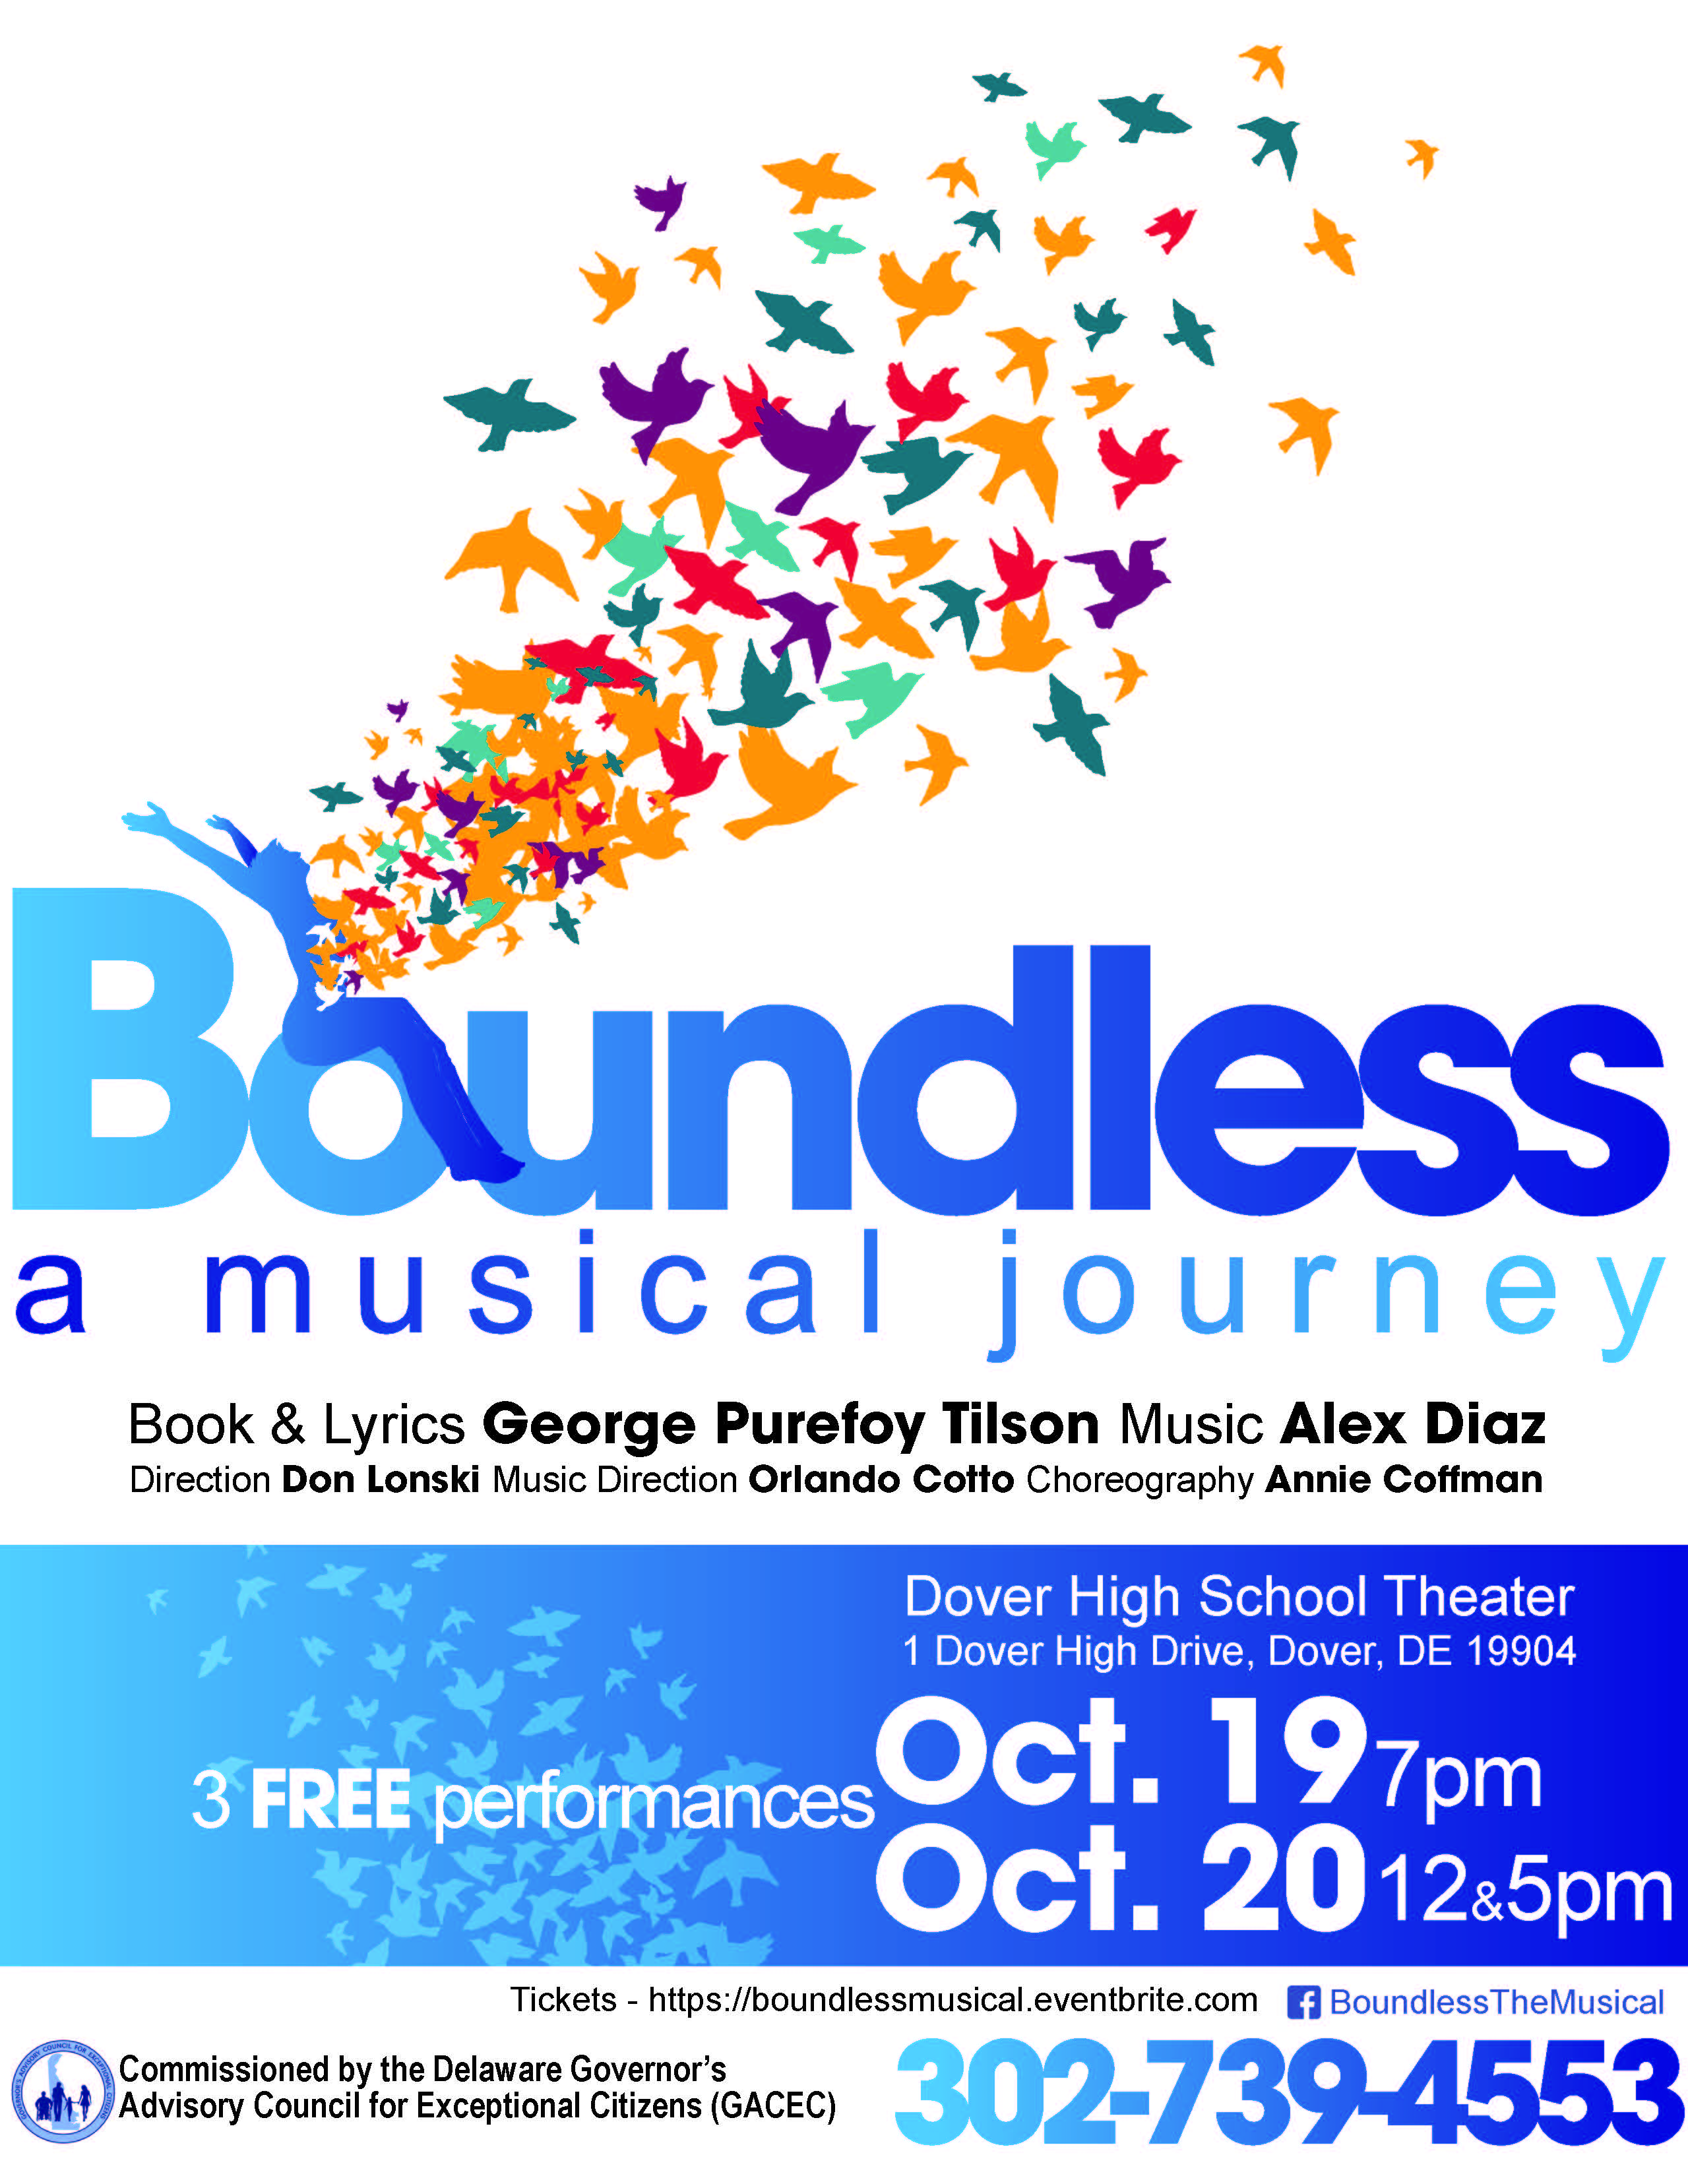 boundless a musical journey